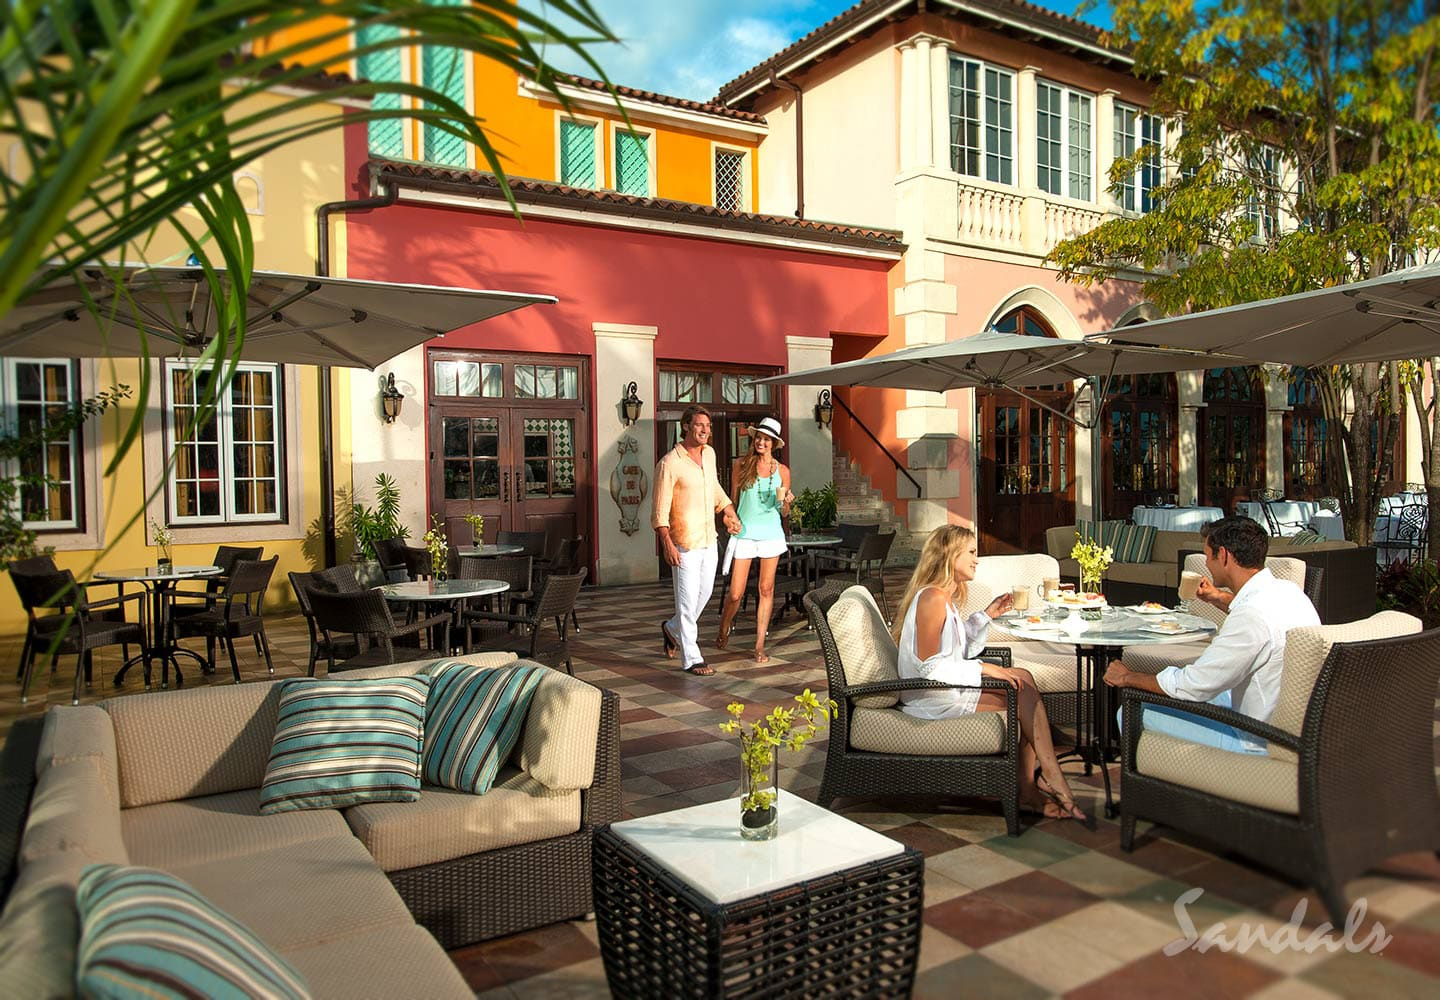 Sandals South Coast, former Sandals Whitehouse, European sophistication with Jamaican flavor, all inclusive group vacation packages